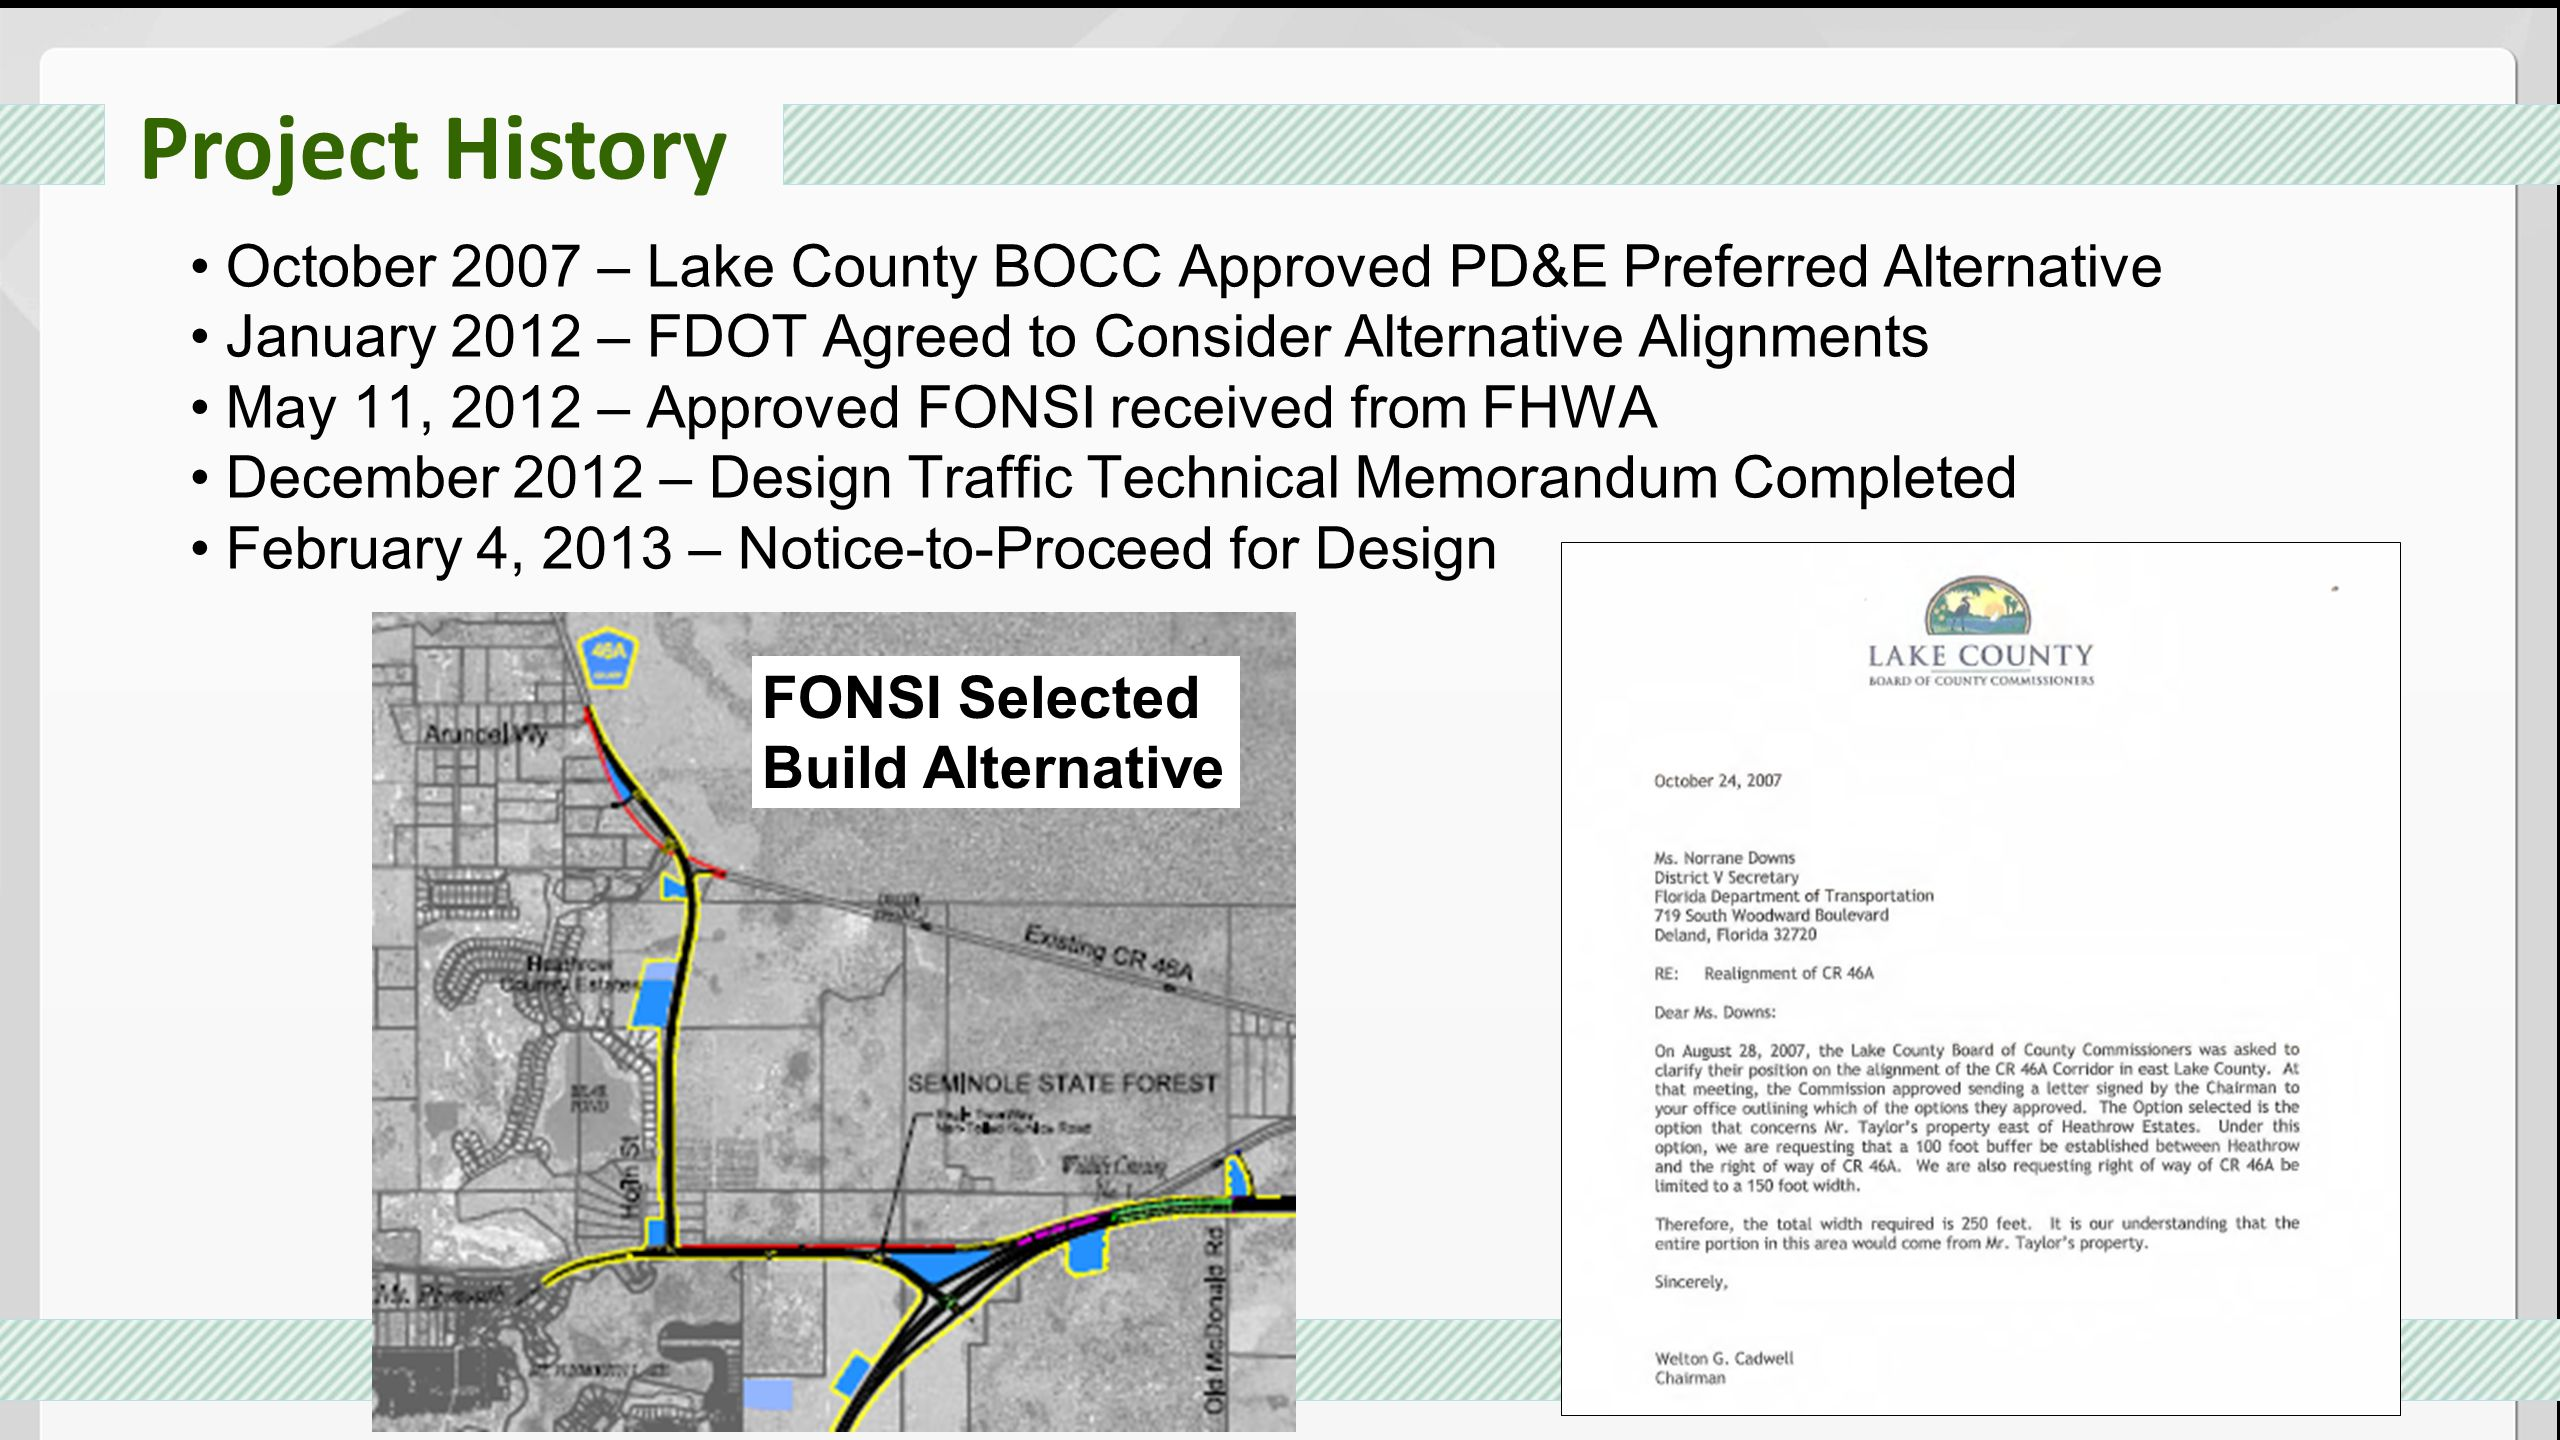 Project History October 2007 – Lake County BOCC Approved PD&E Preferred Alternative. January 2012 – FDOT Agreed to Consider Alternative Alignments.